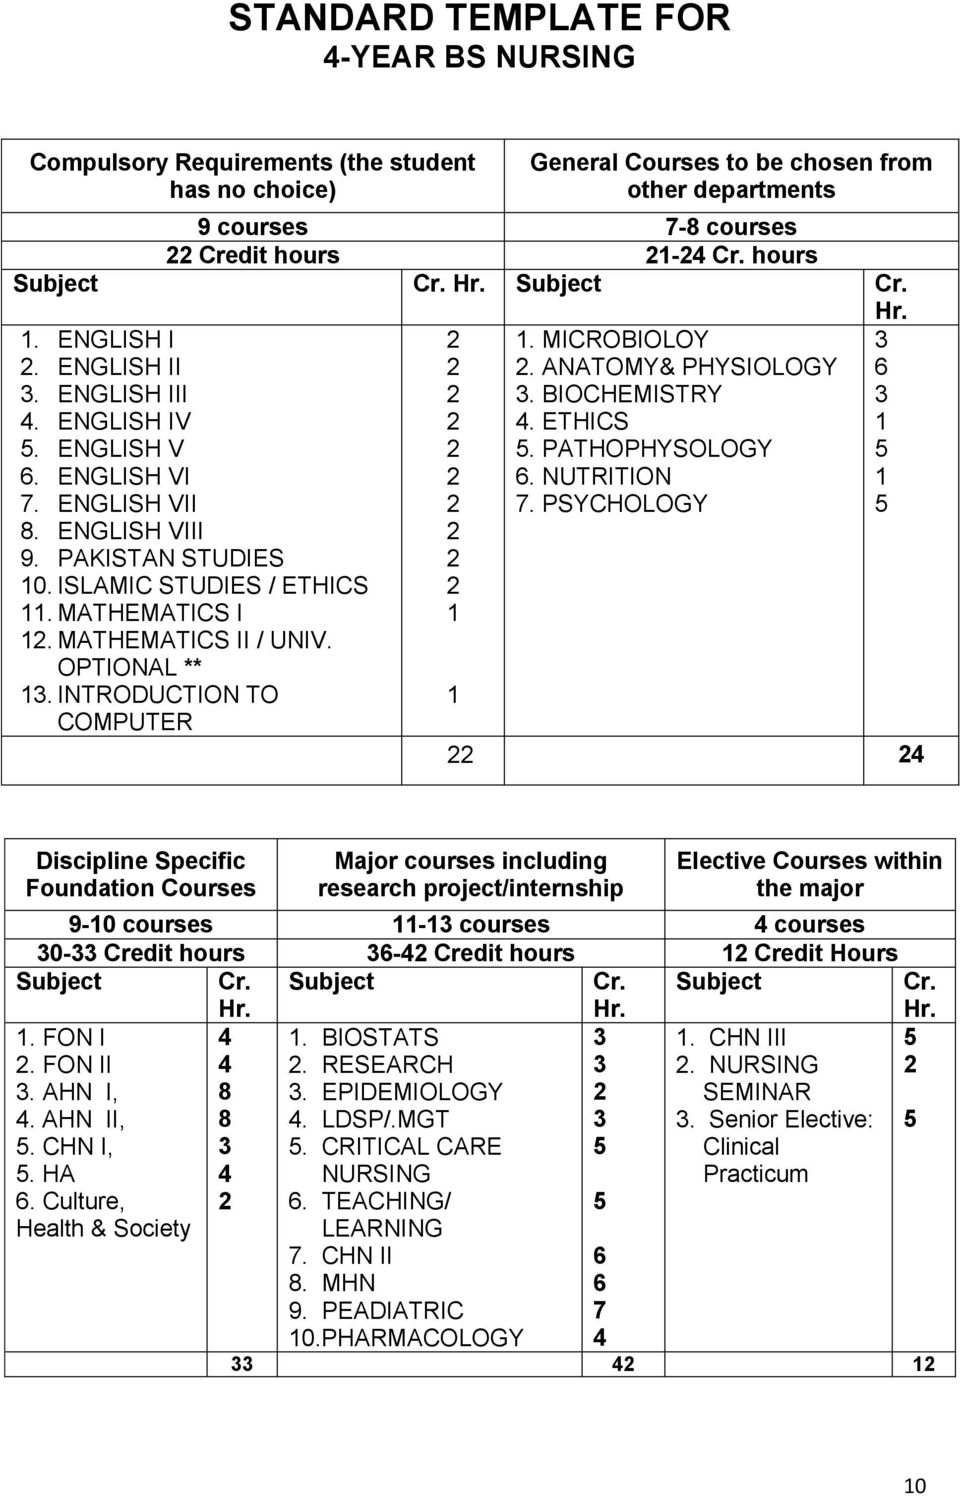 ISLAMIC STUDIES / ETHICS 11. MATHEMATICS I 12. MATHEMATICS II / UNIV. OPTIONAL ** 13. INTRODUCTION TO COMPUTER 2 2 2 2 2 2 2 2 2 2 1 1 1. MICROBIOLOY 2. ANATOMY& PHYSIOLOGY 3. BIOCHEMISTRY 4.